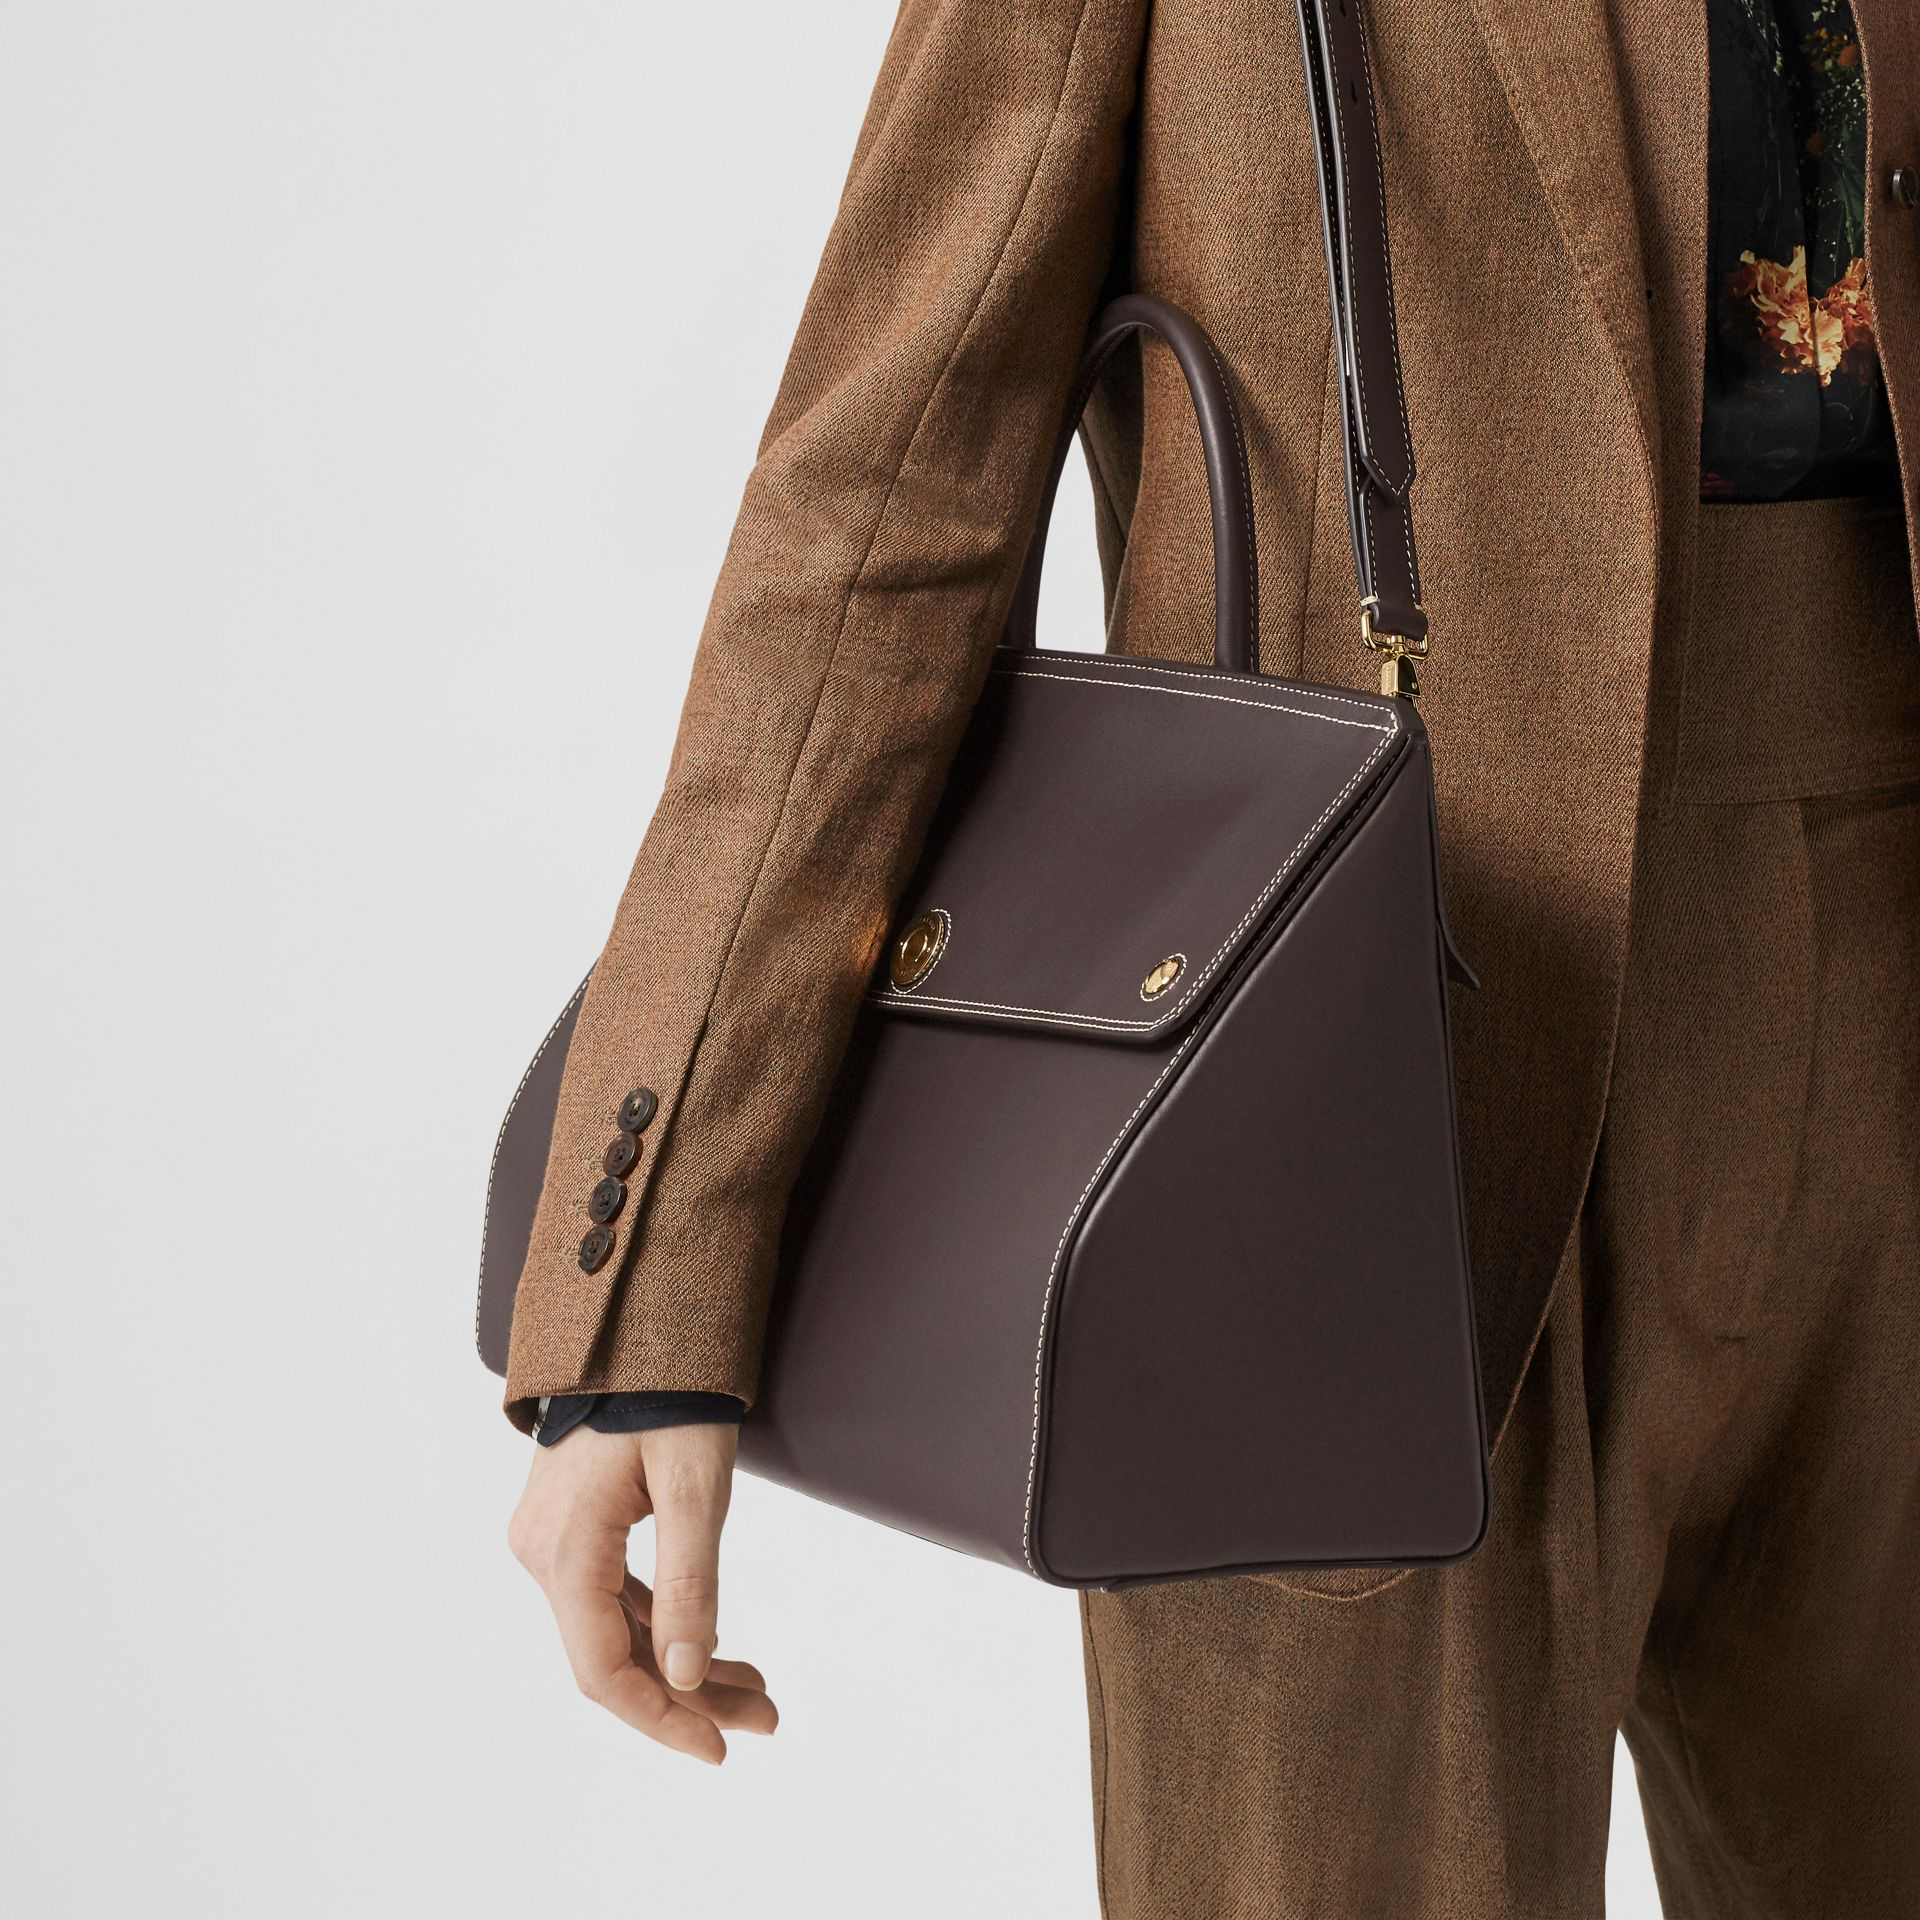 Medium Leather Elizabeth Bag in Coffee - Women | Burberry - gallery image 2